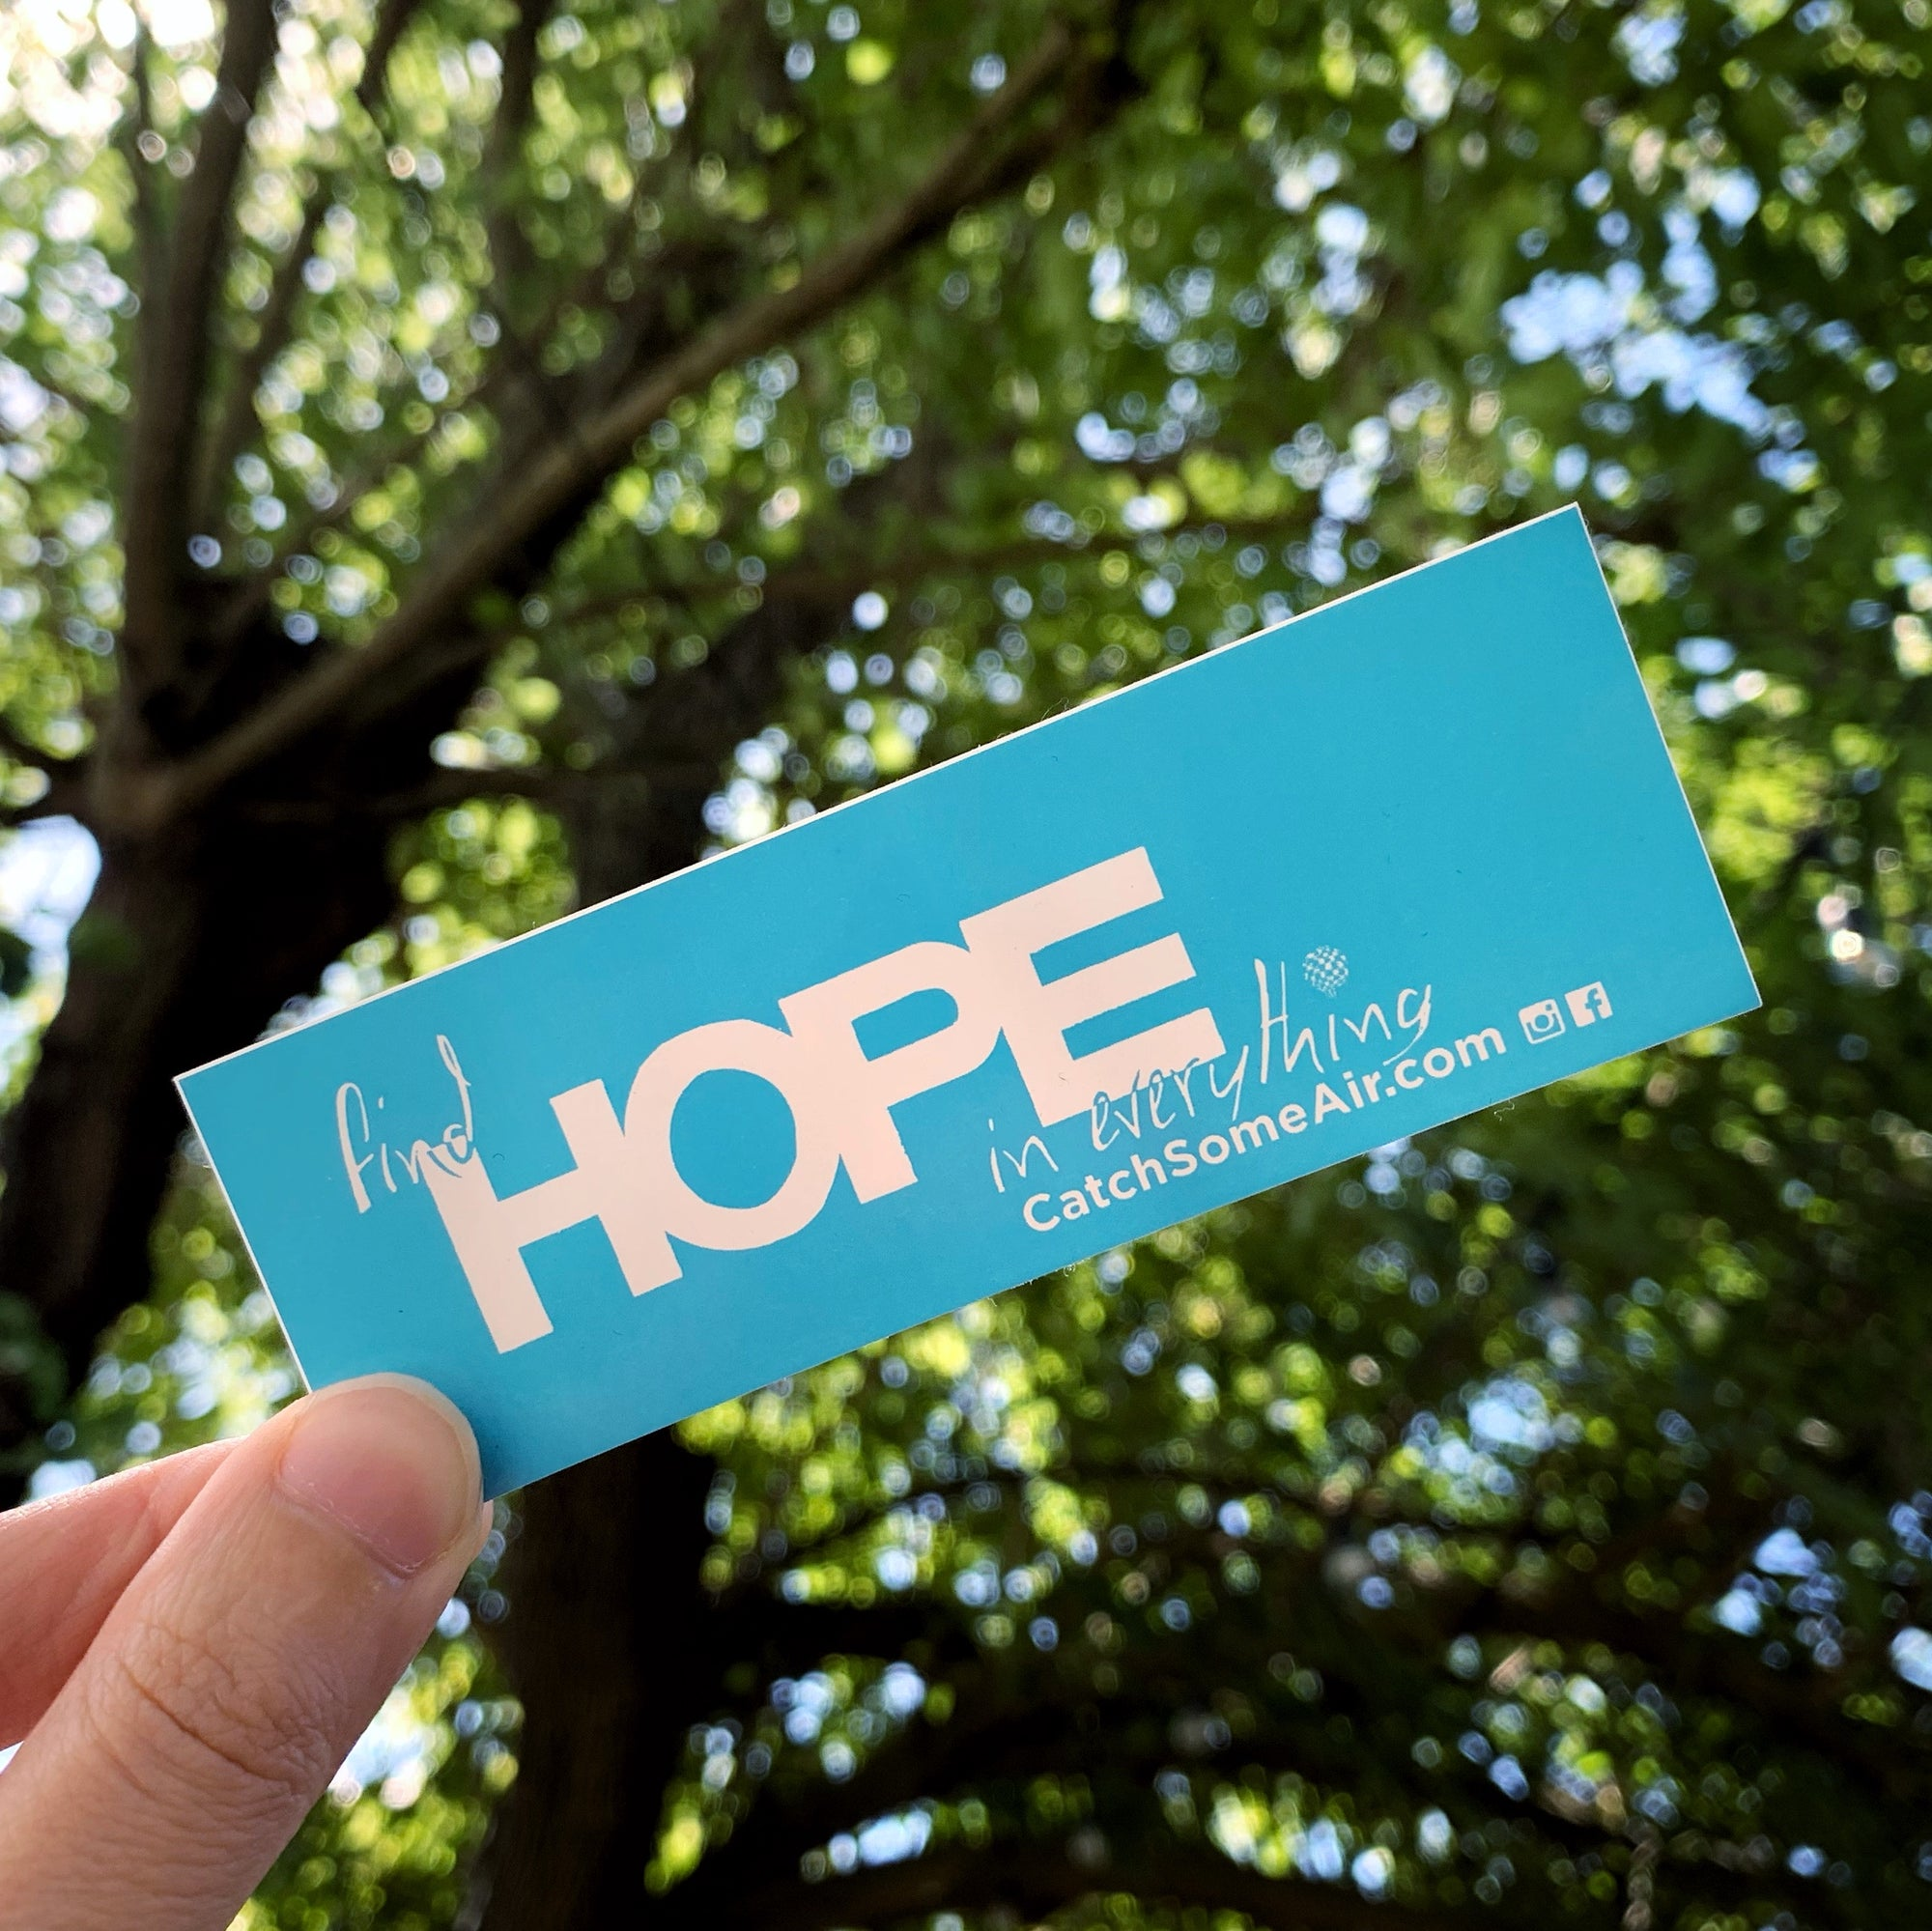 FIND HOPE IN EVERYTHING | sticker